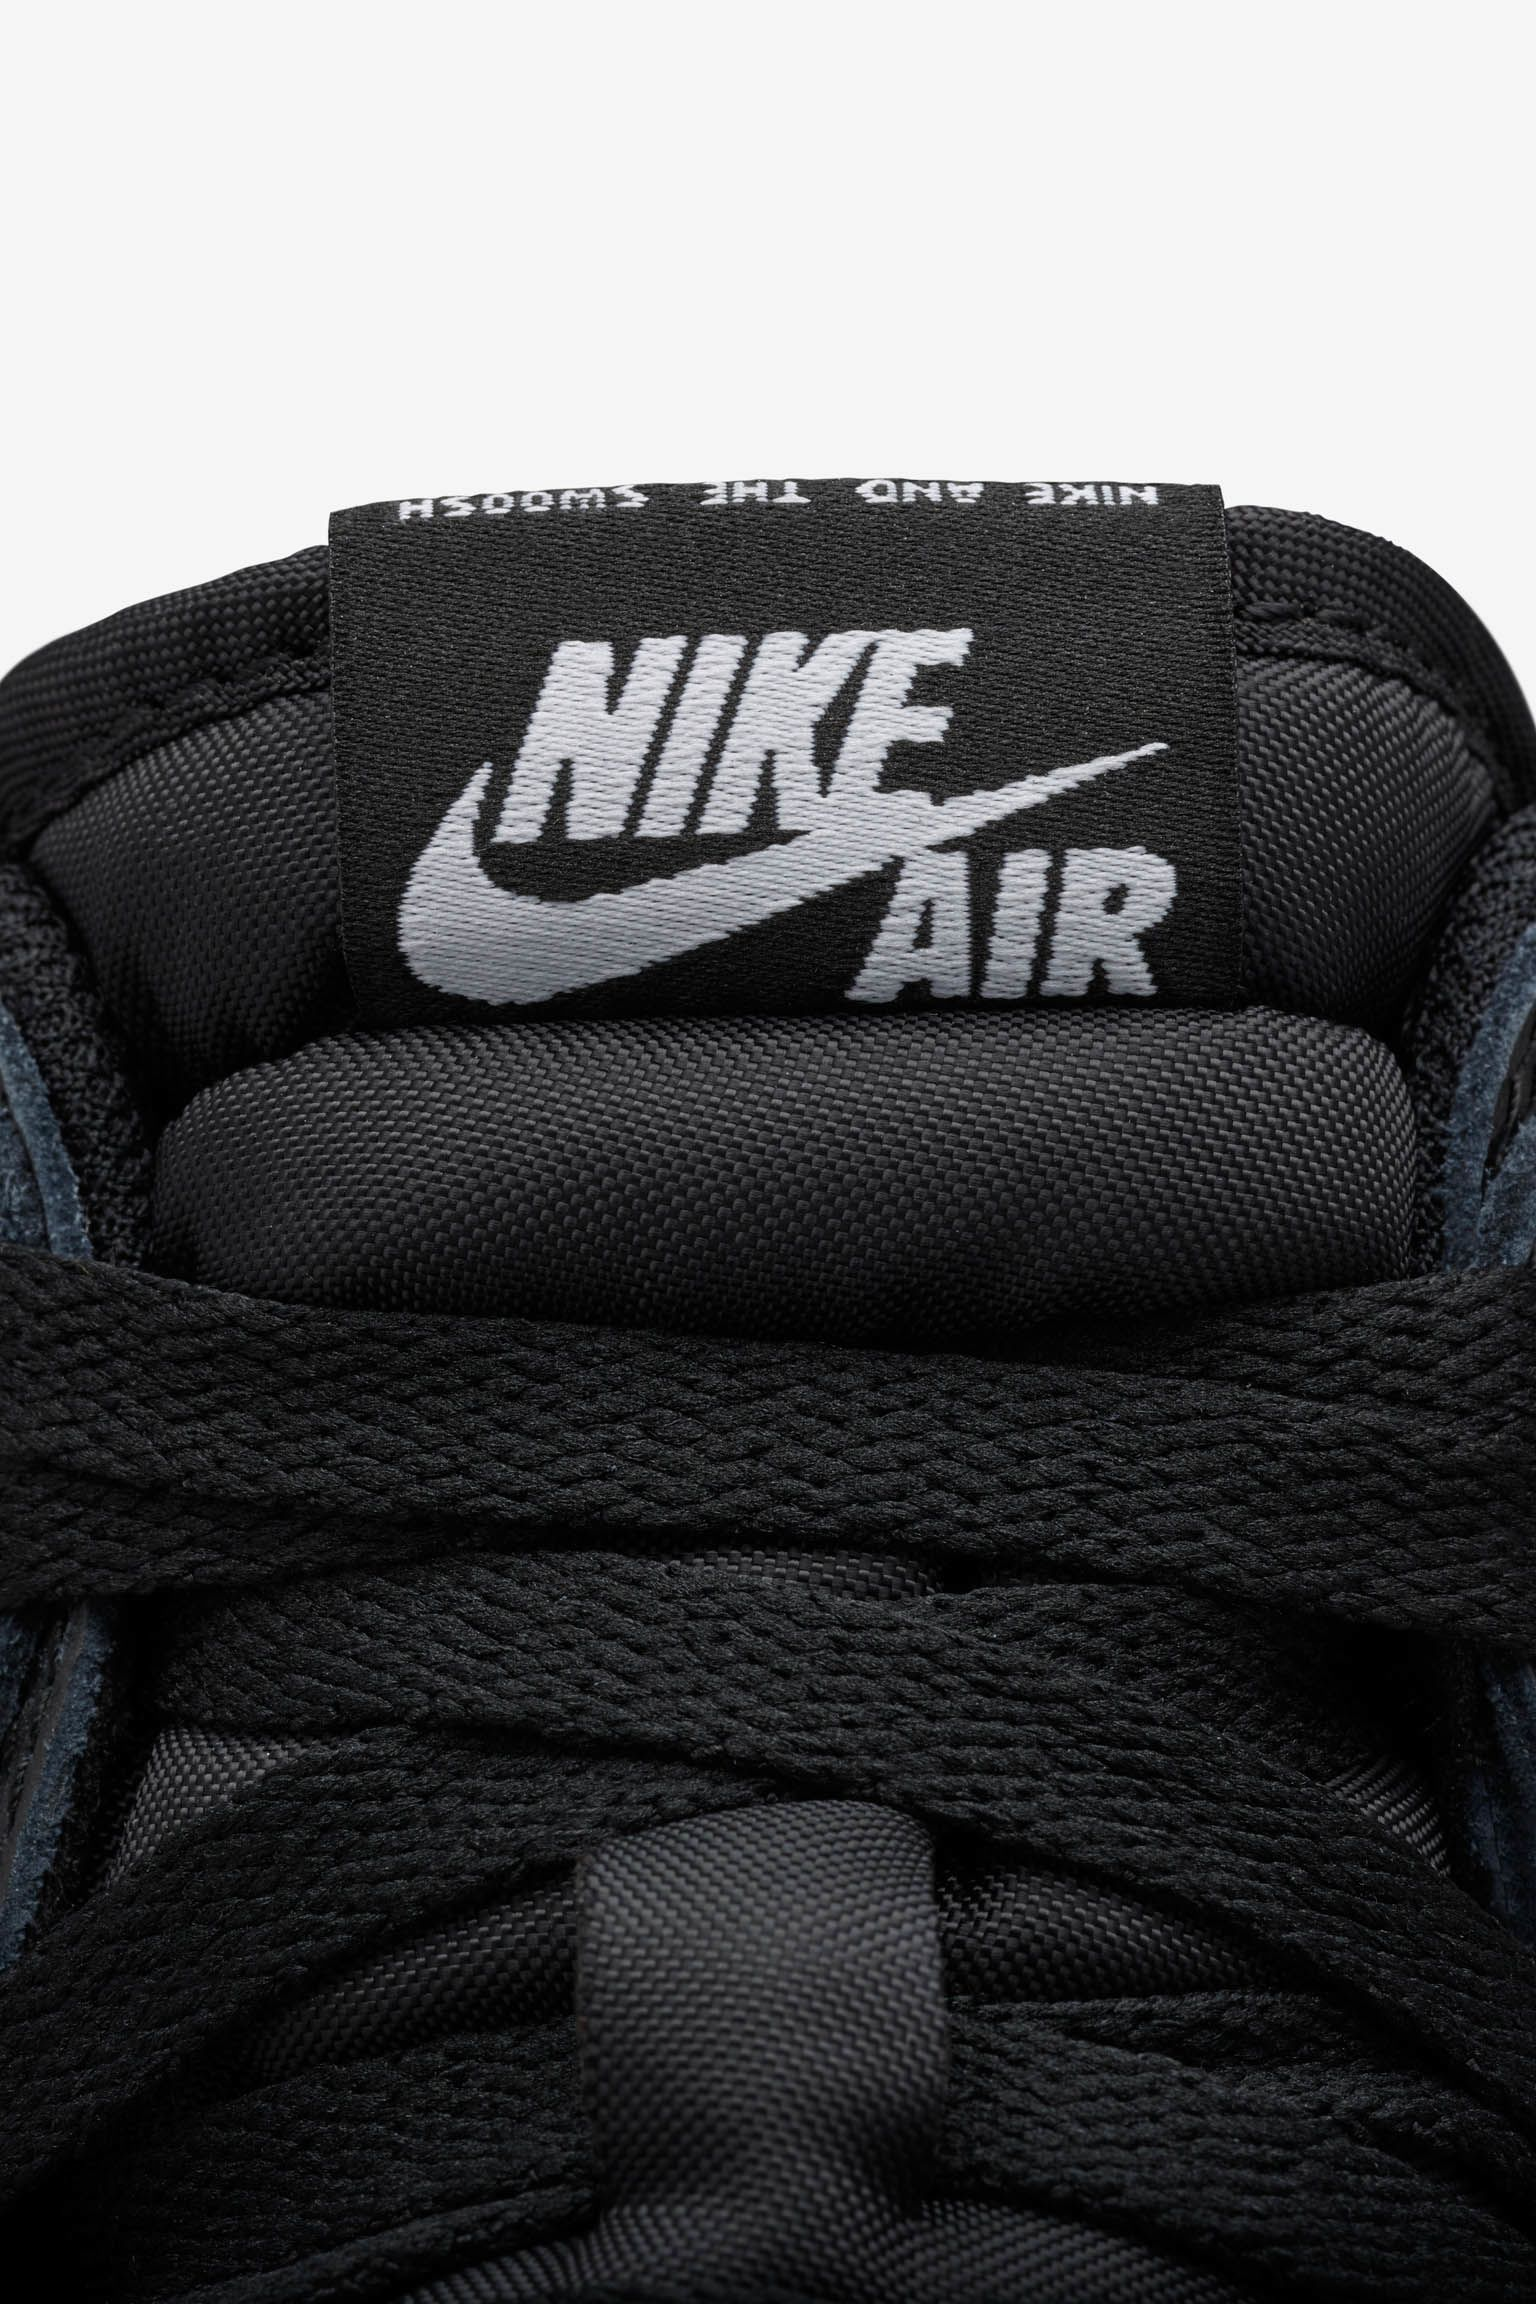 Air Jordan 1 Retro 'Black & White' Release Date